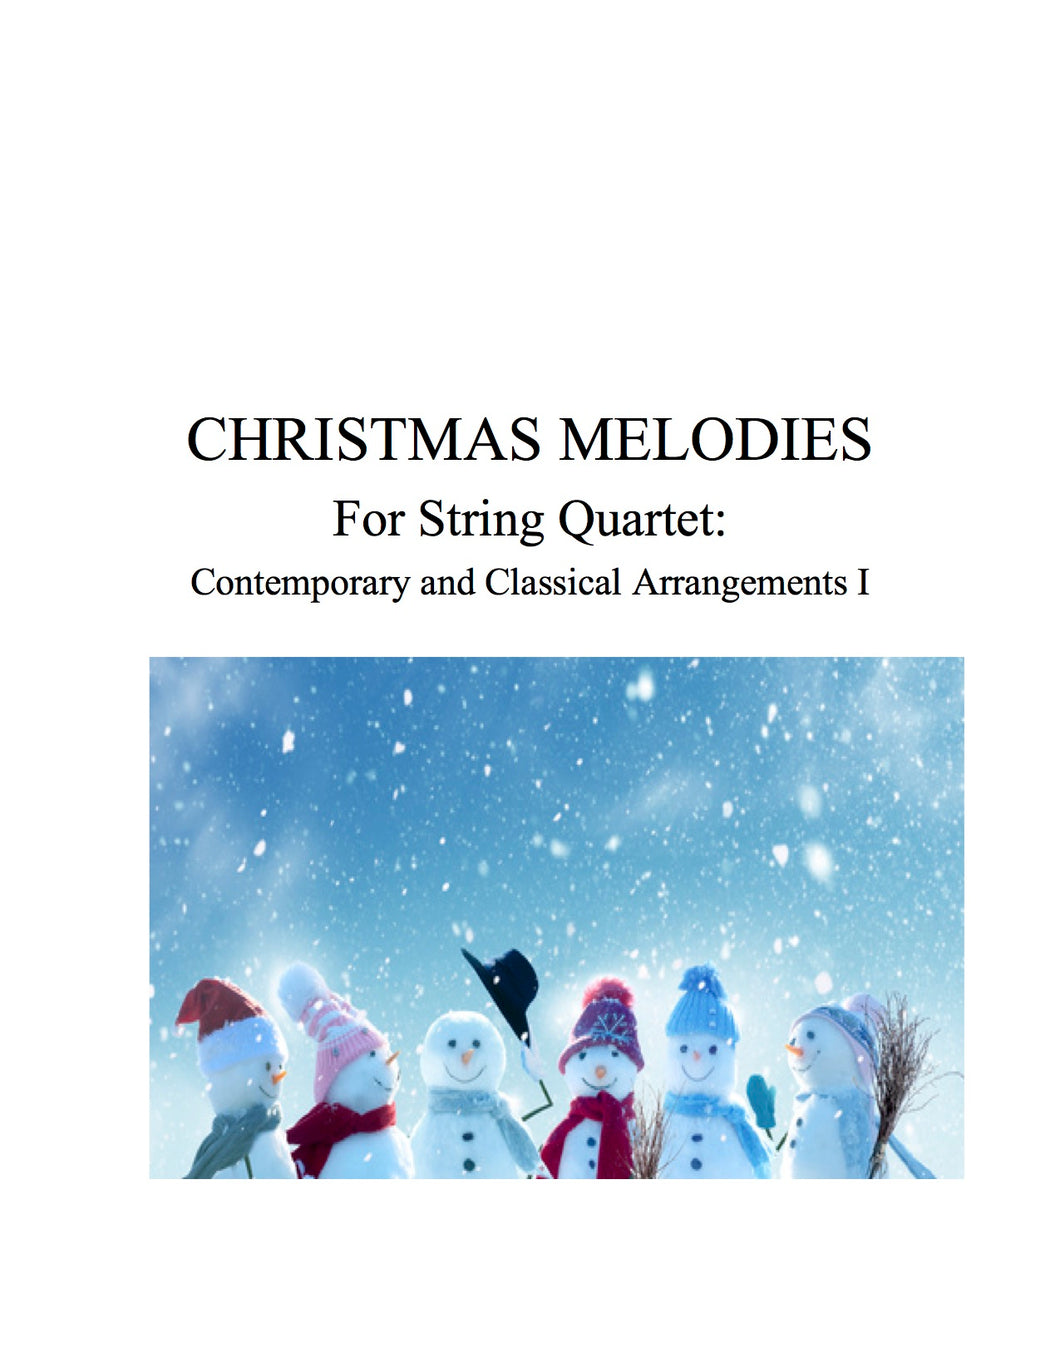 047 - Christmas Melodies For String Quartet,  Volume I